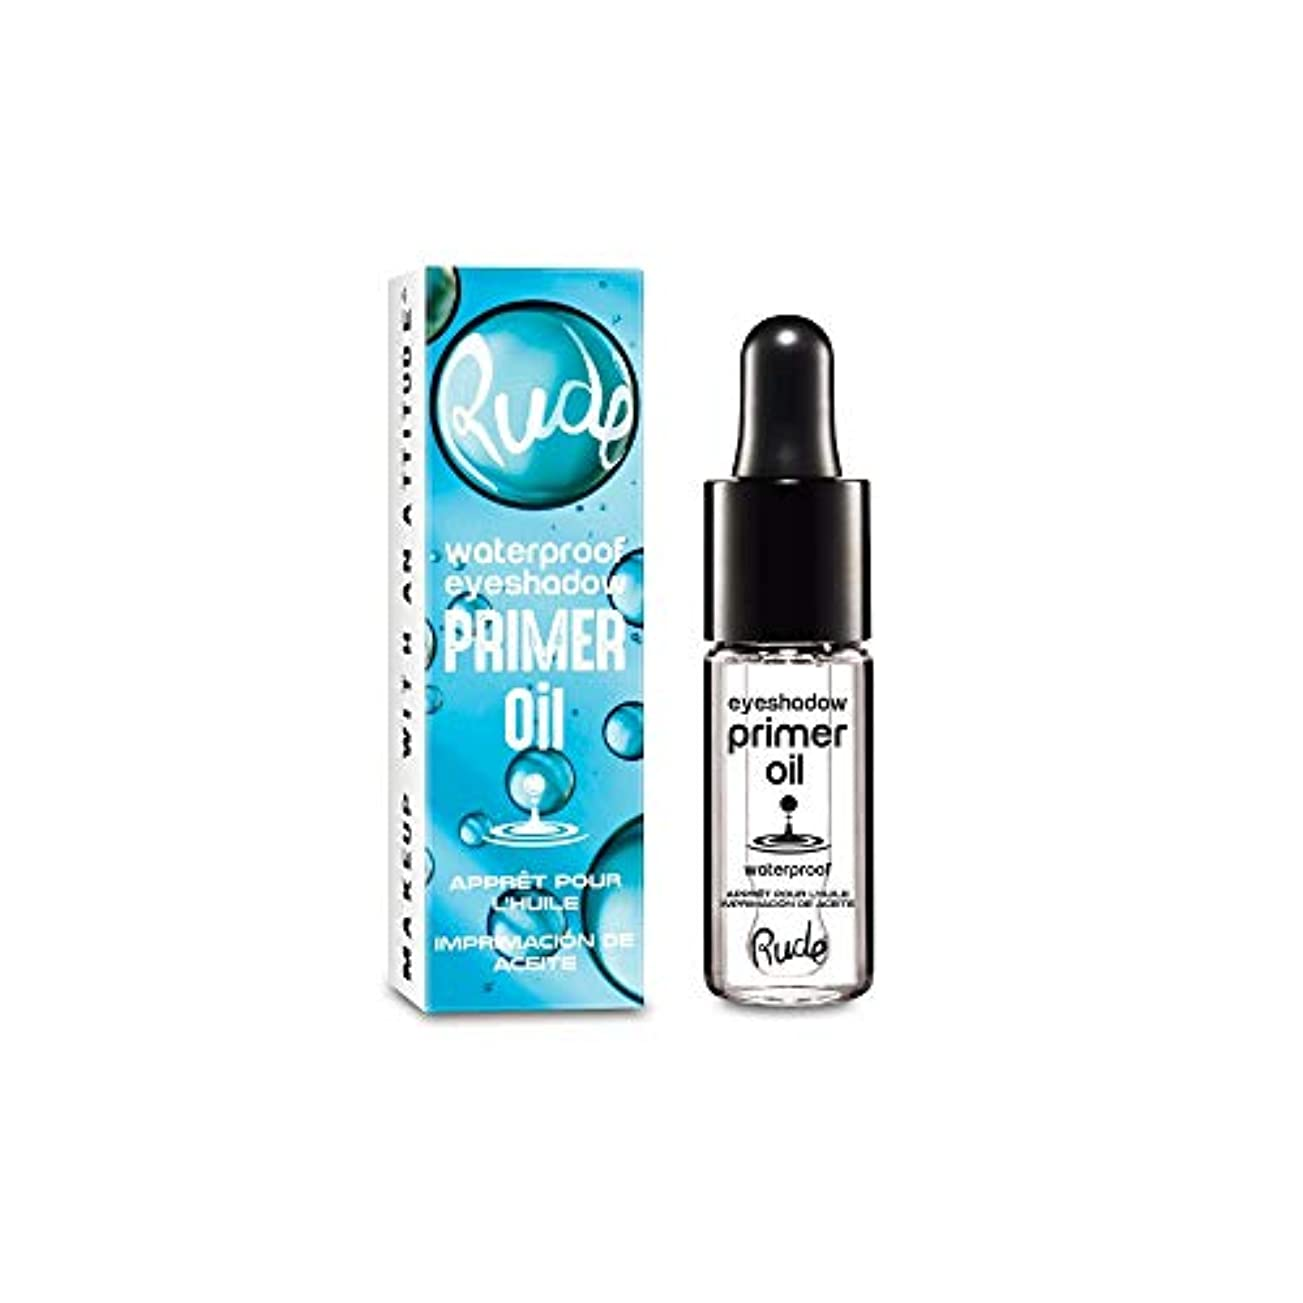 (3 Pack) RUDE Waterproof Eyeshadow Primer Oil (並行輸入品)